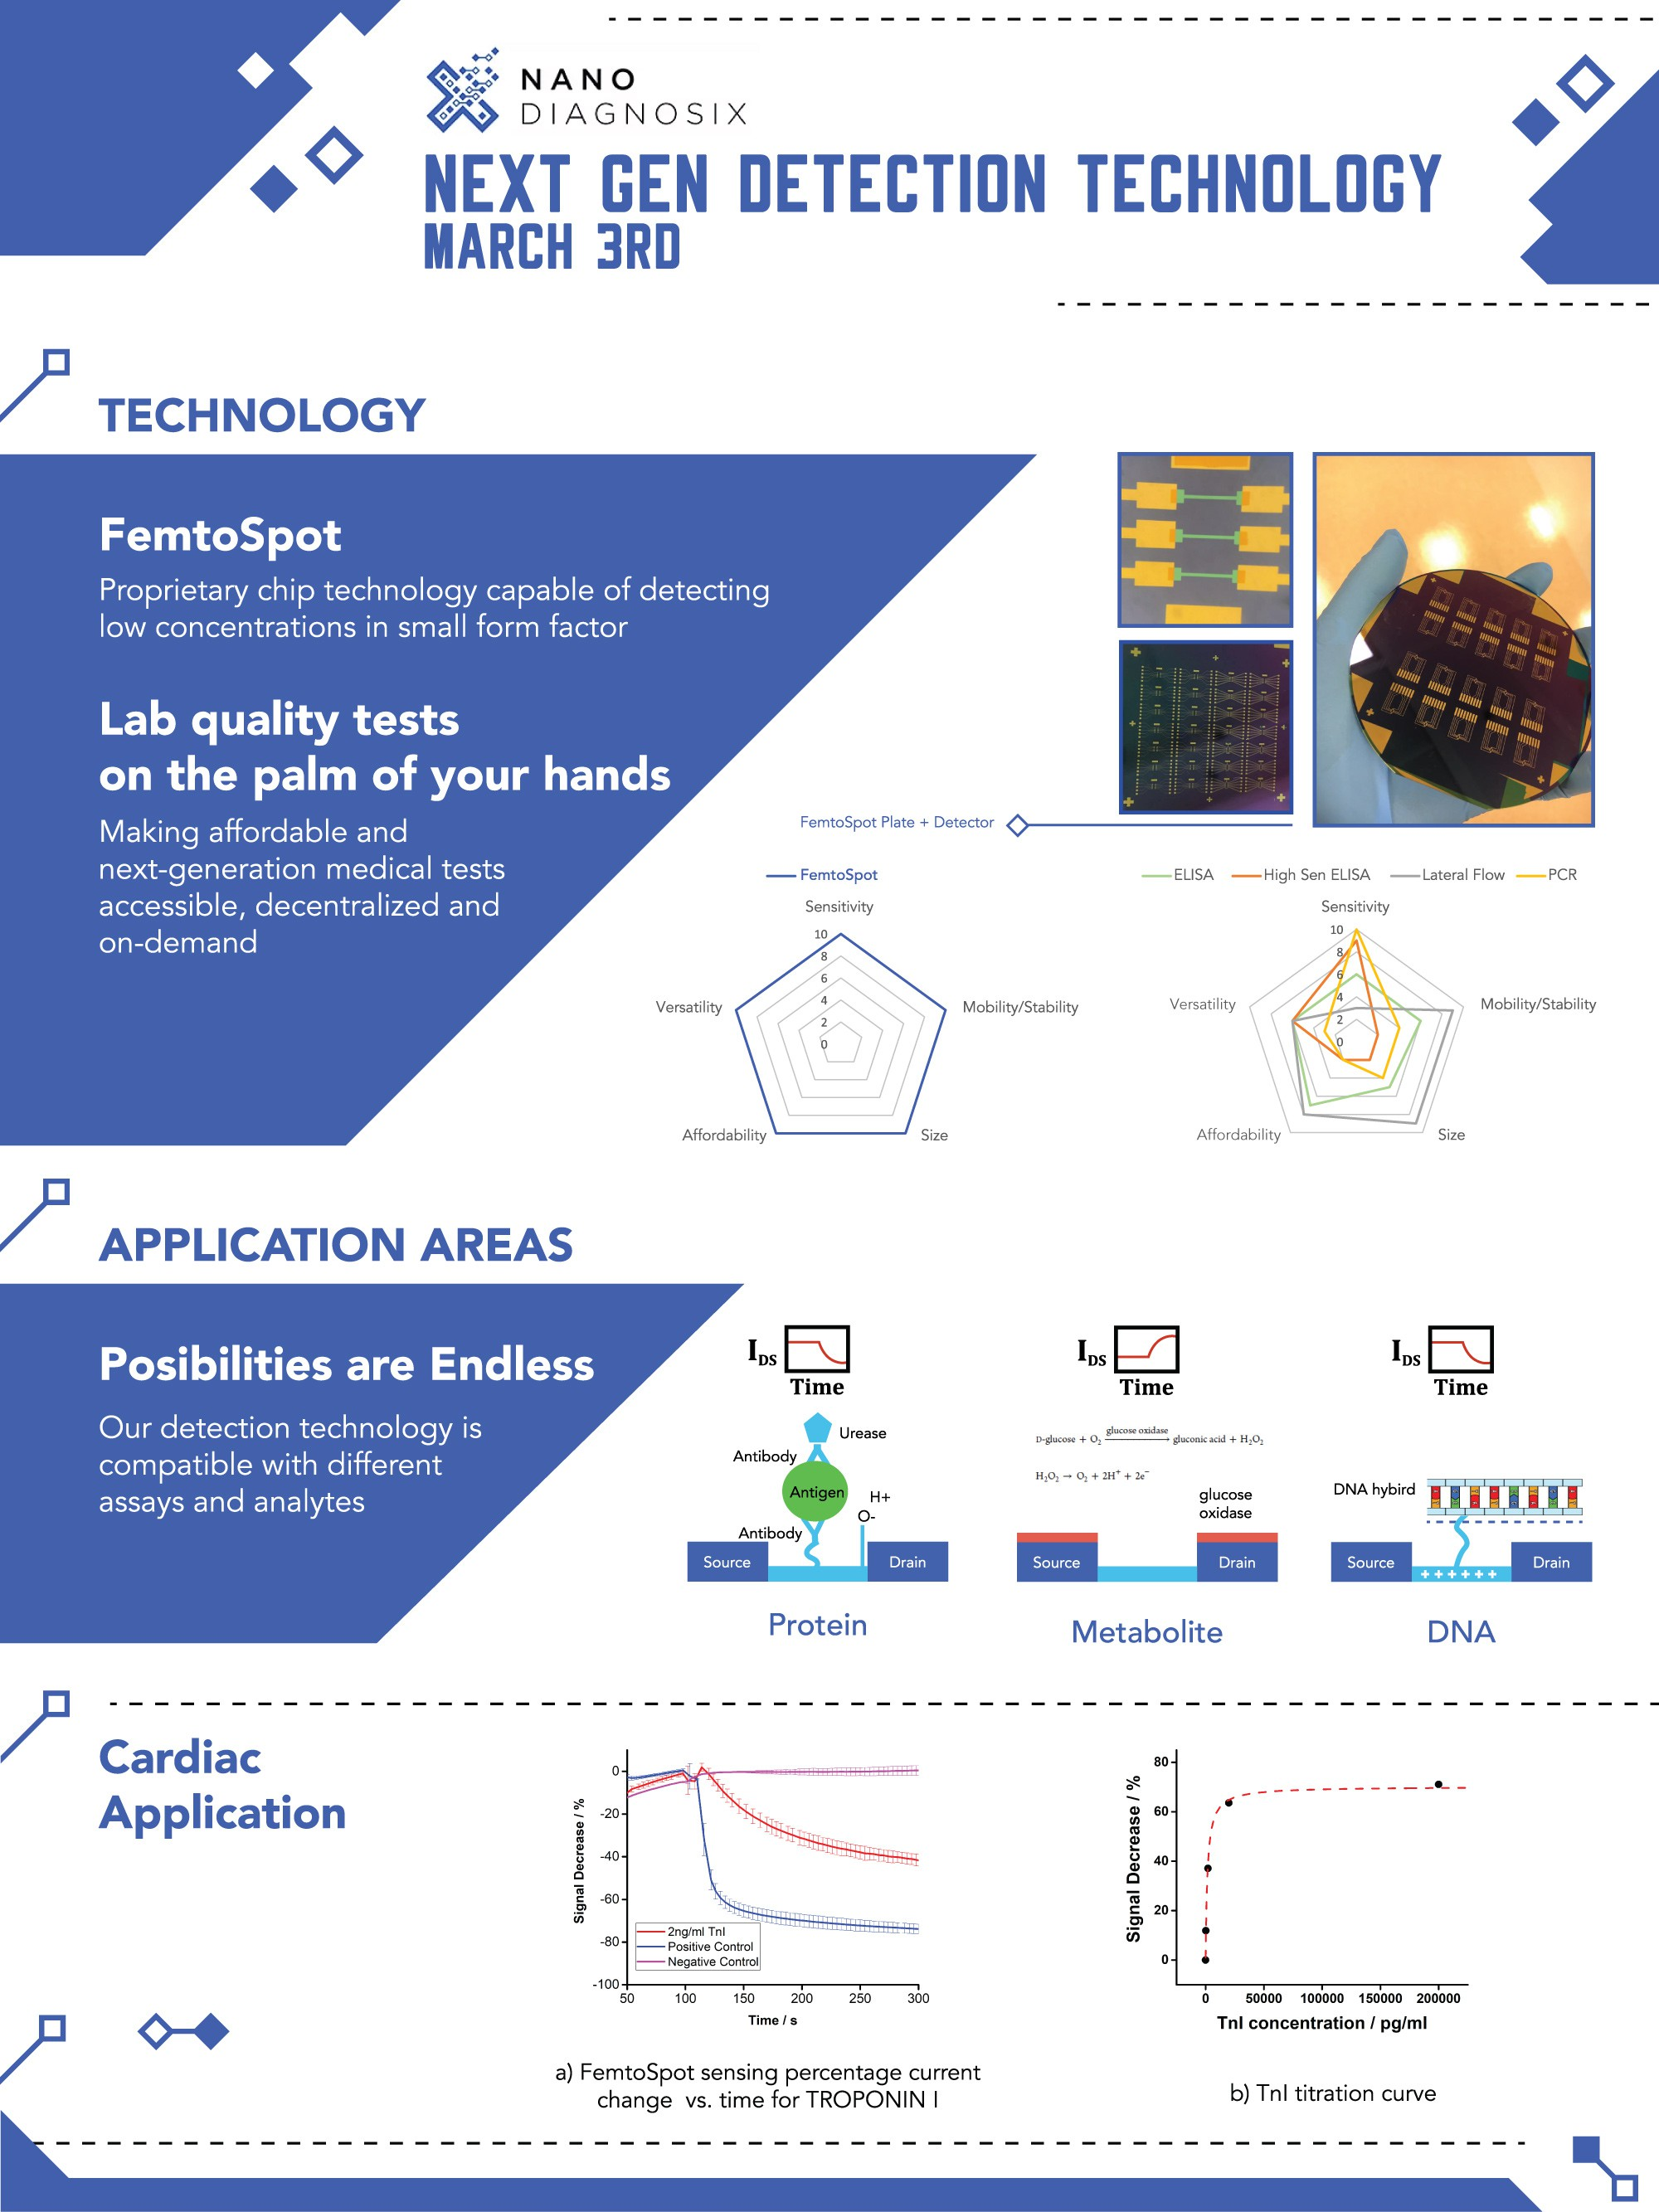 Create a poster for a biotechnology startup